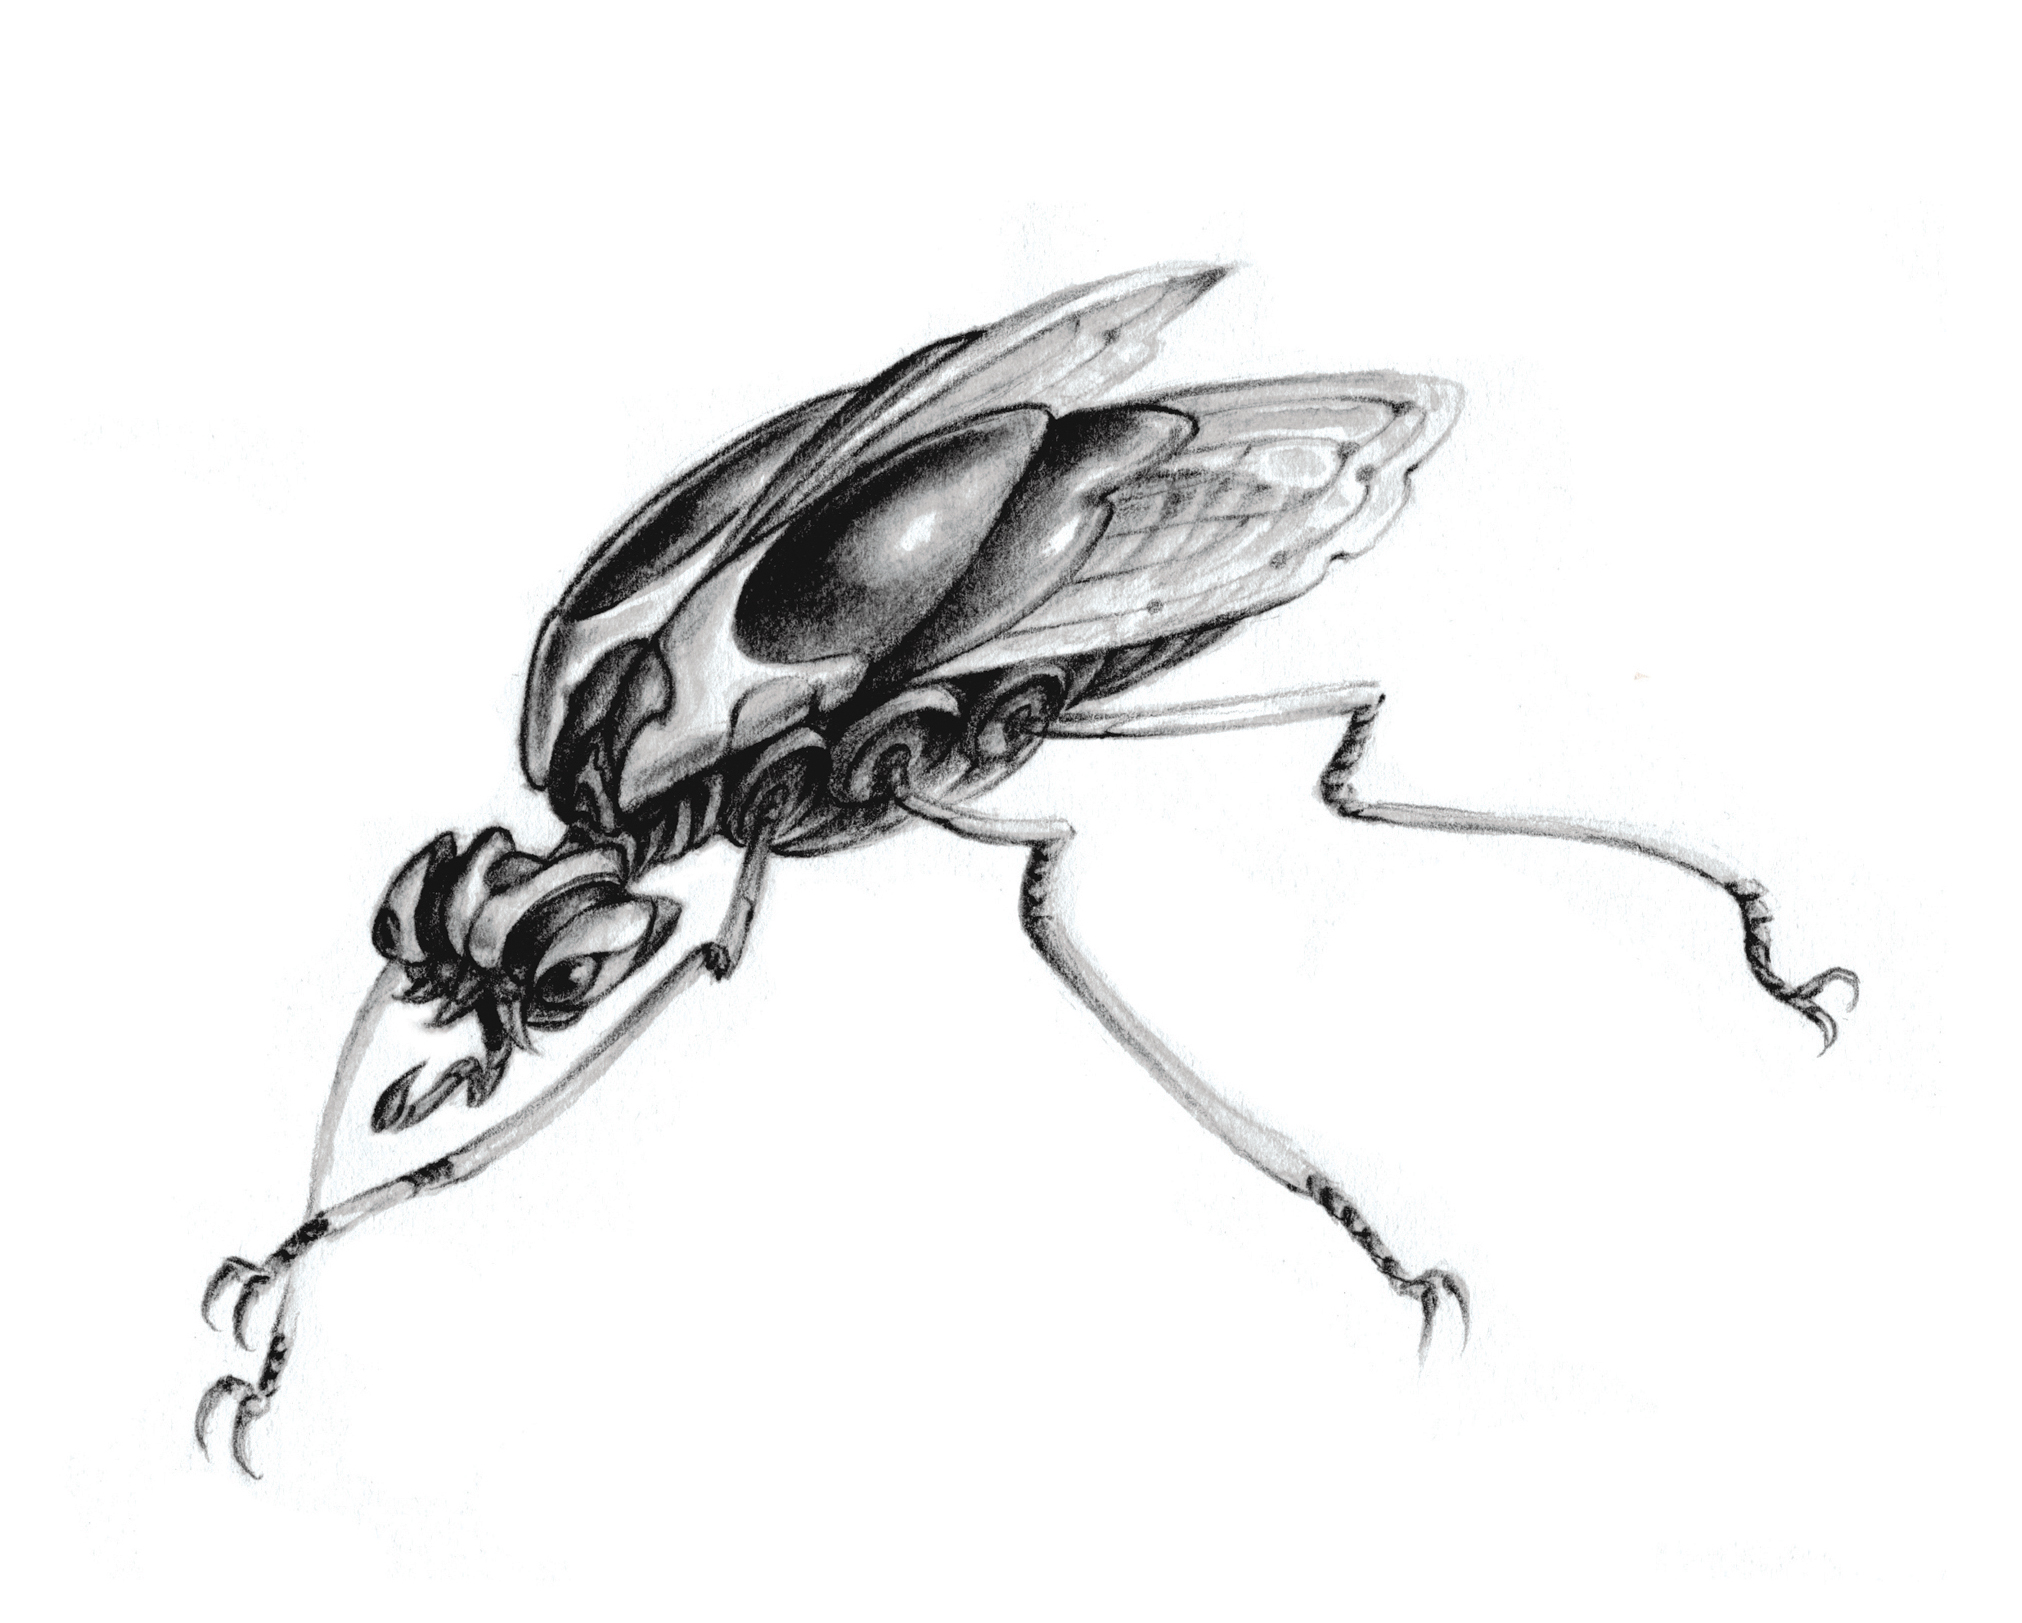 "Untitled (mech-insect).  2004 - pencil & watercolor on paper. 5"" x 8""."